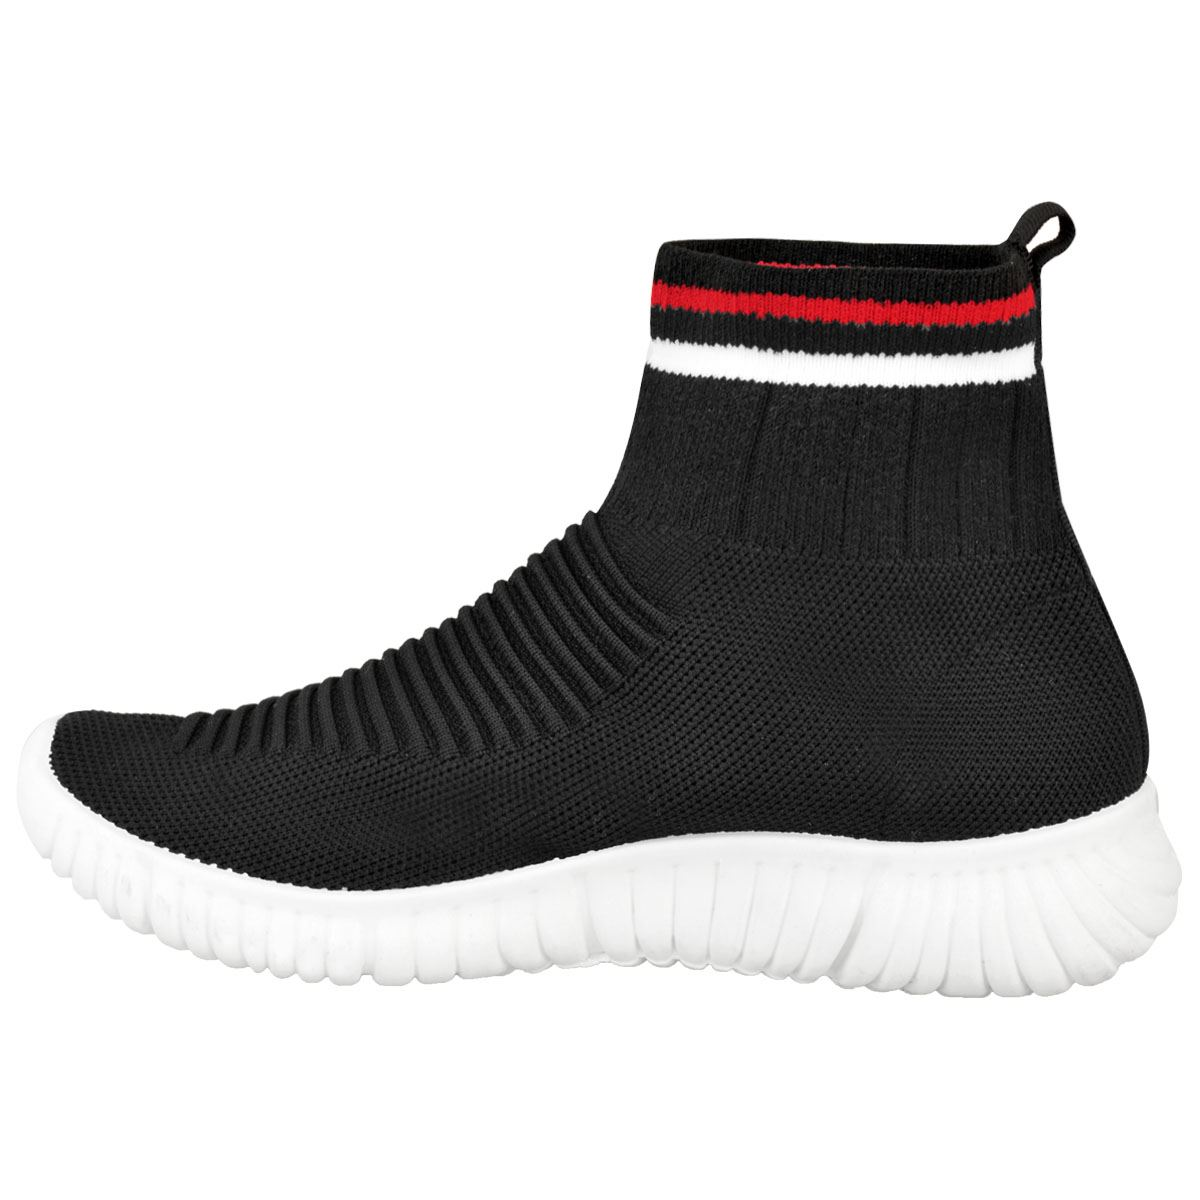 69fc9a3279ef6 Womens Ladies Speed Trainers Sock Sneakers Runners Stretch Fitness ...